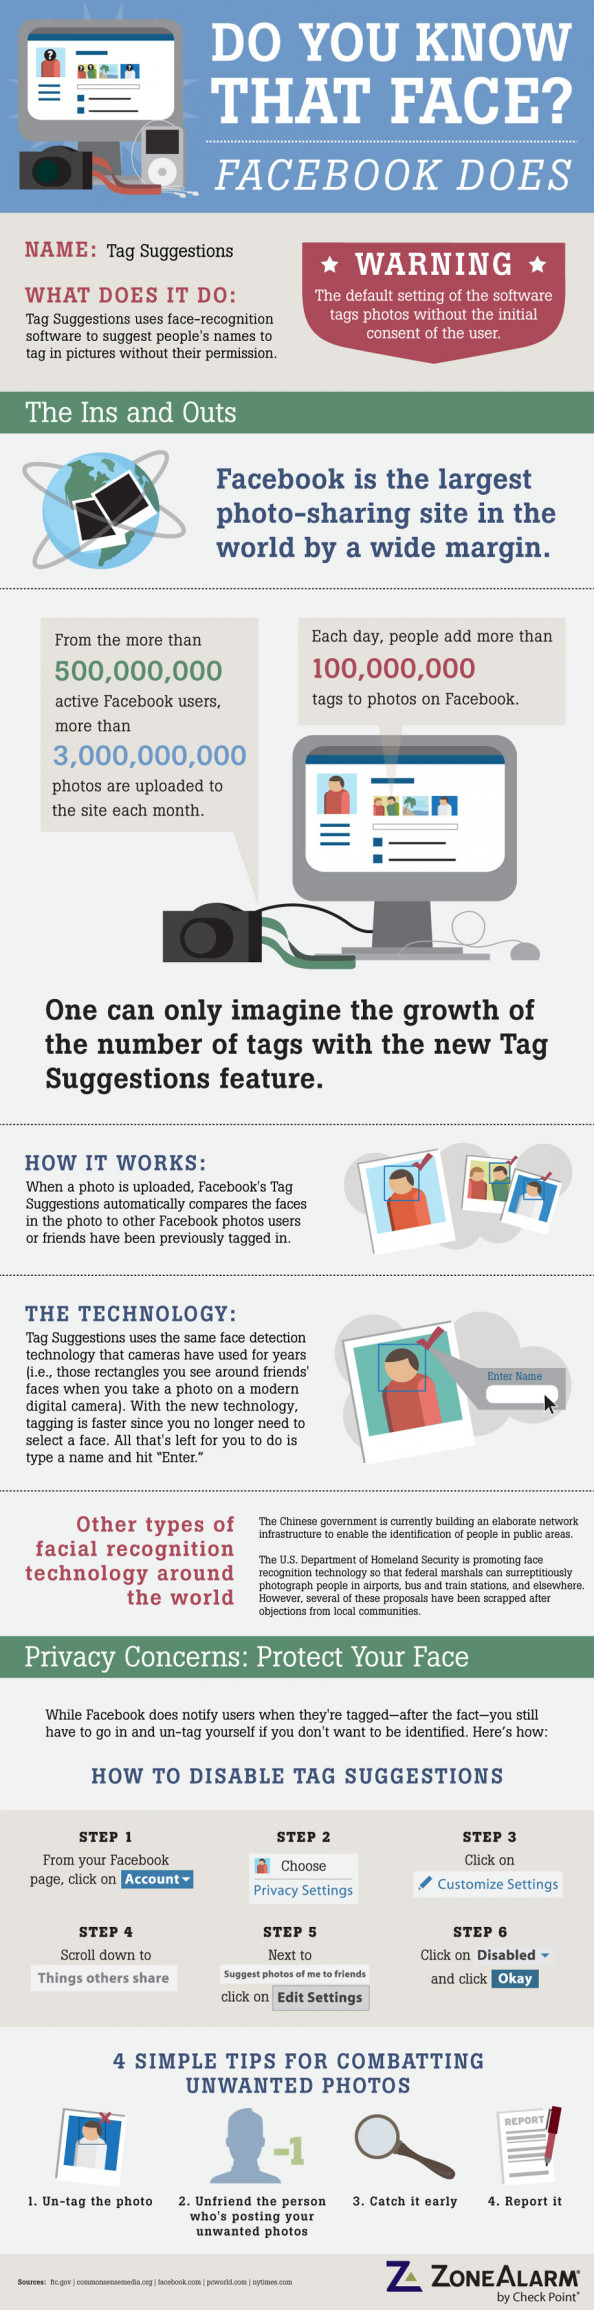 Do You Know That Face? Facebook Does Infographic